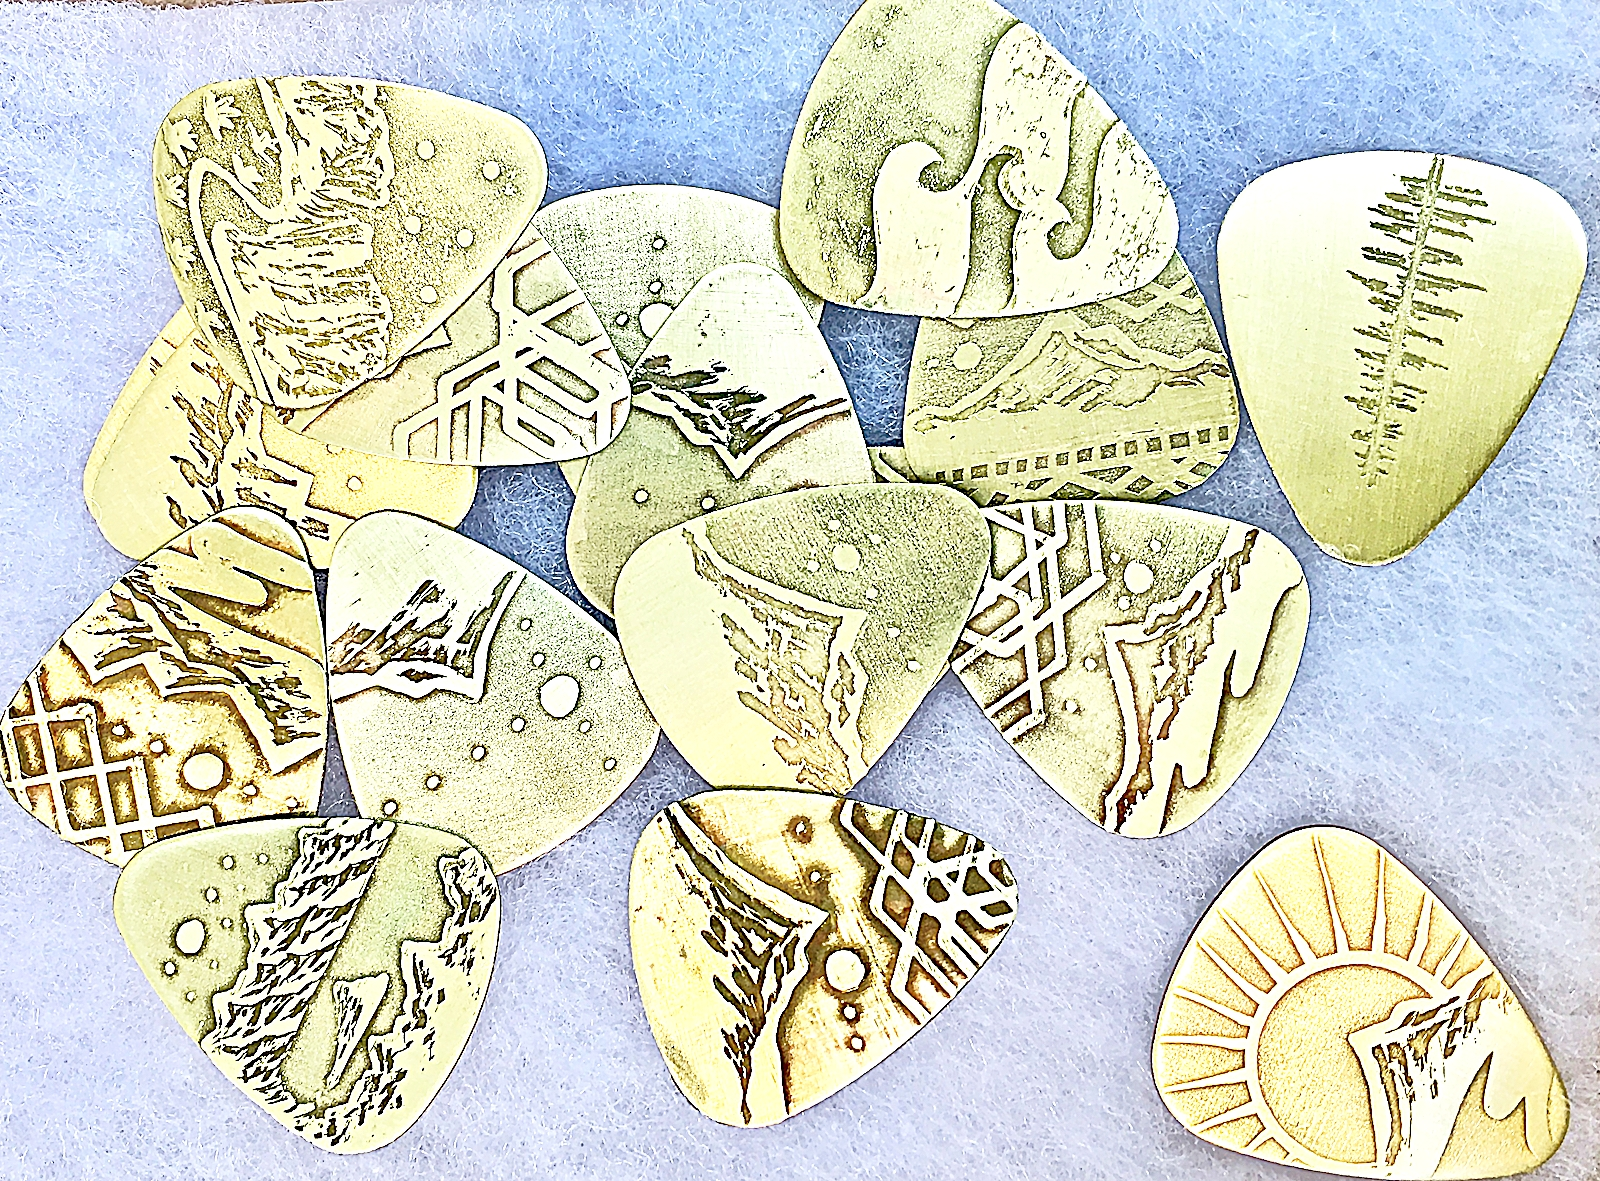 Handcrafted Handdrawn, Acid Etched Gutiar Picks